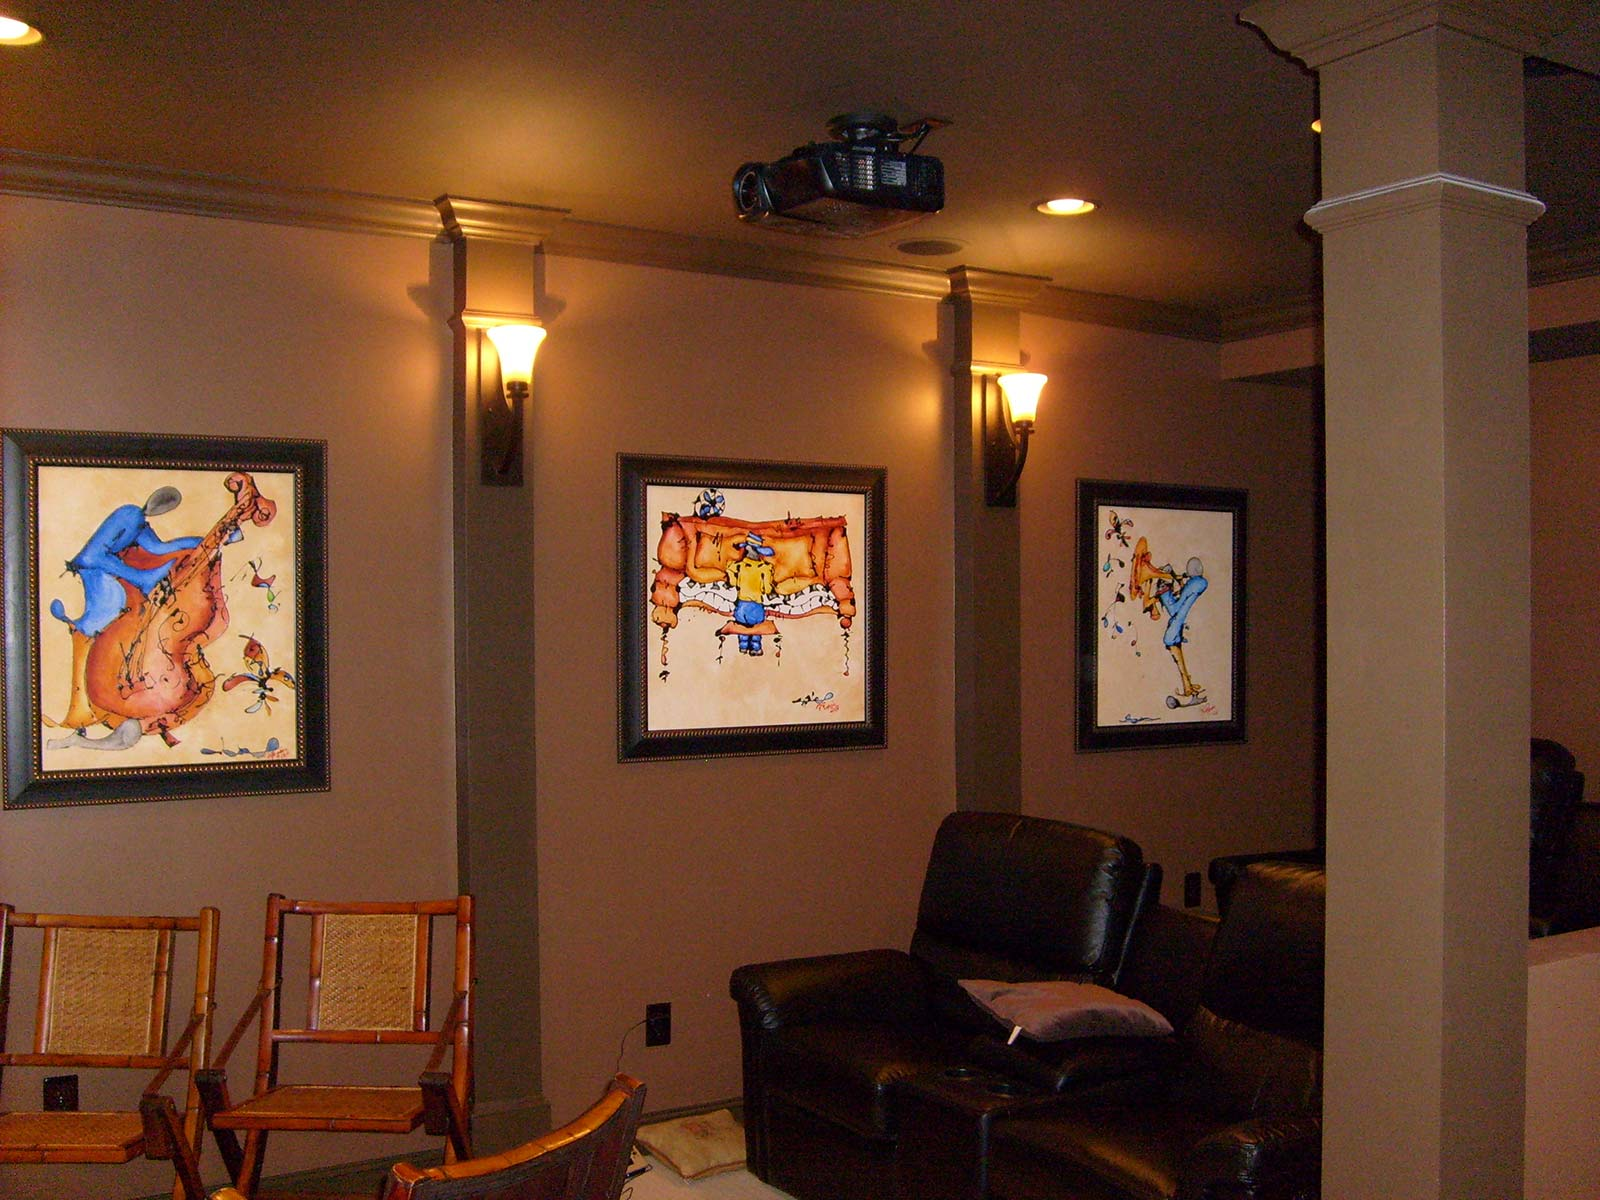 Home theater seating and wall sconces for lighting